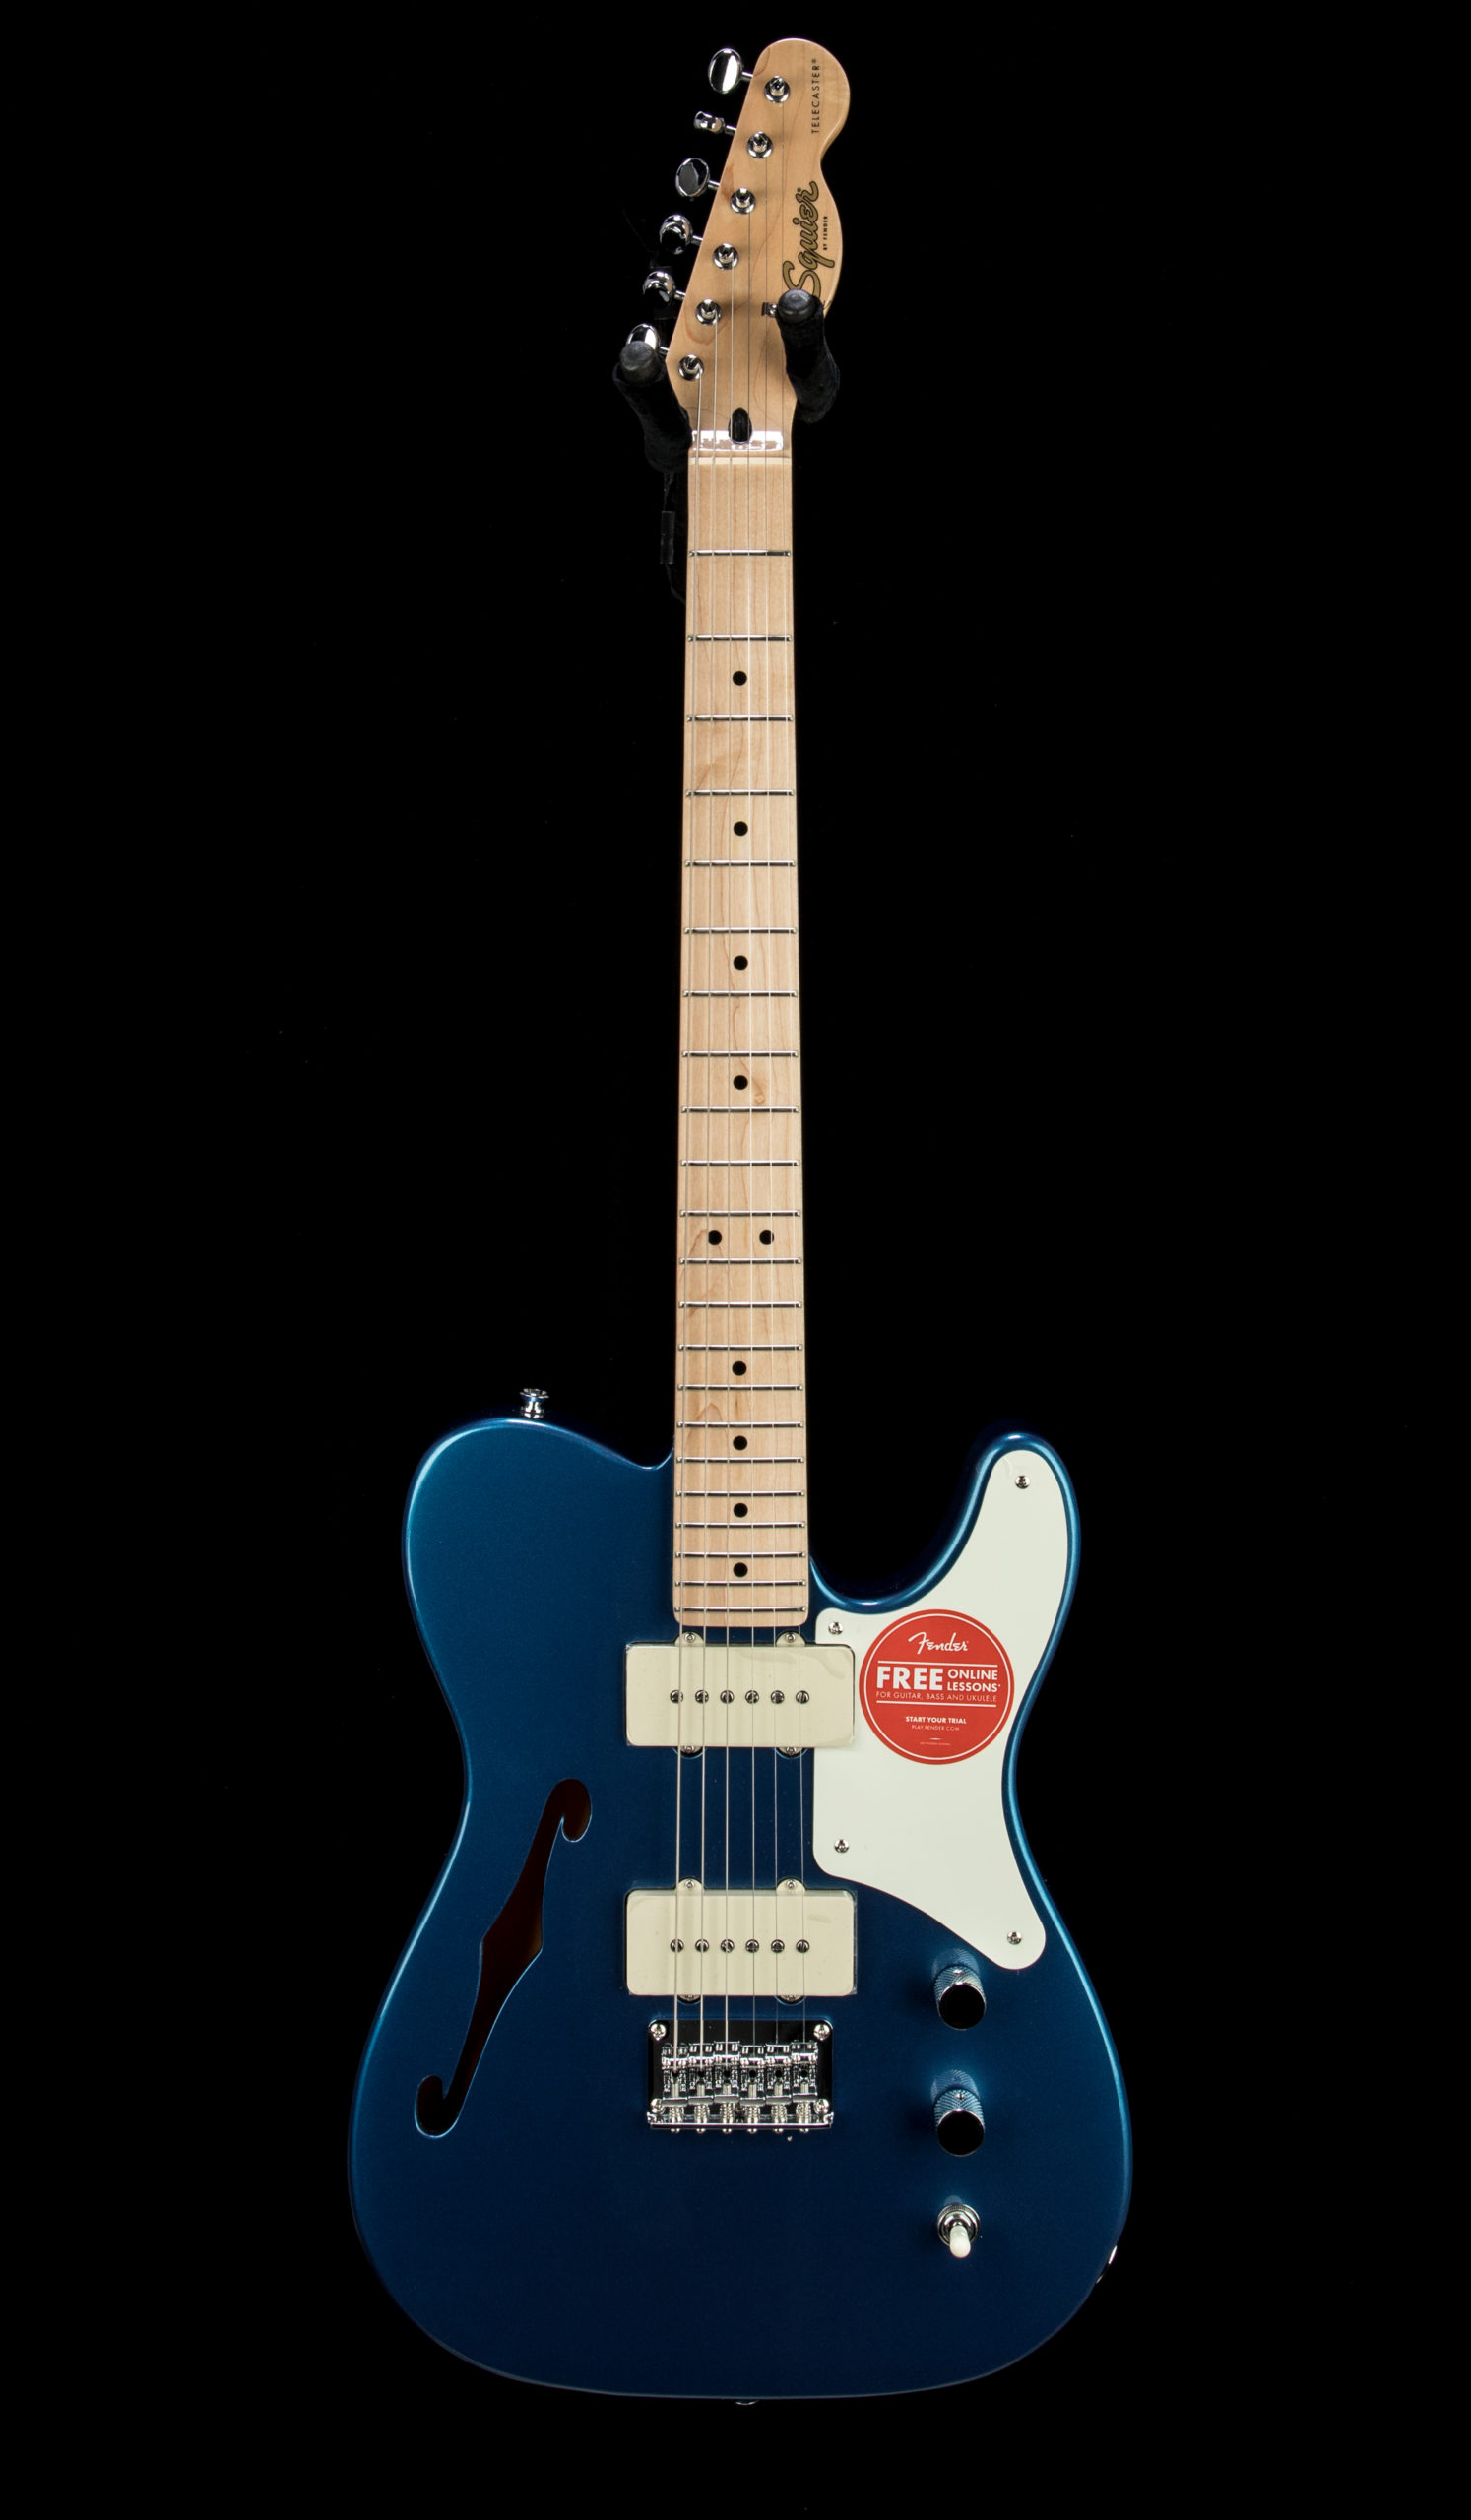 Squier Paranormal Cab Tele Thinlie #CYKC21002438 Front